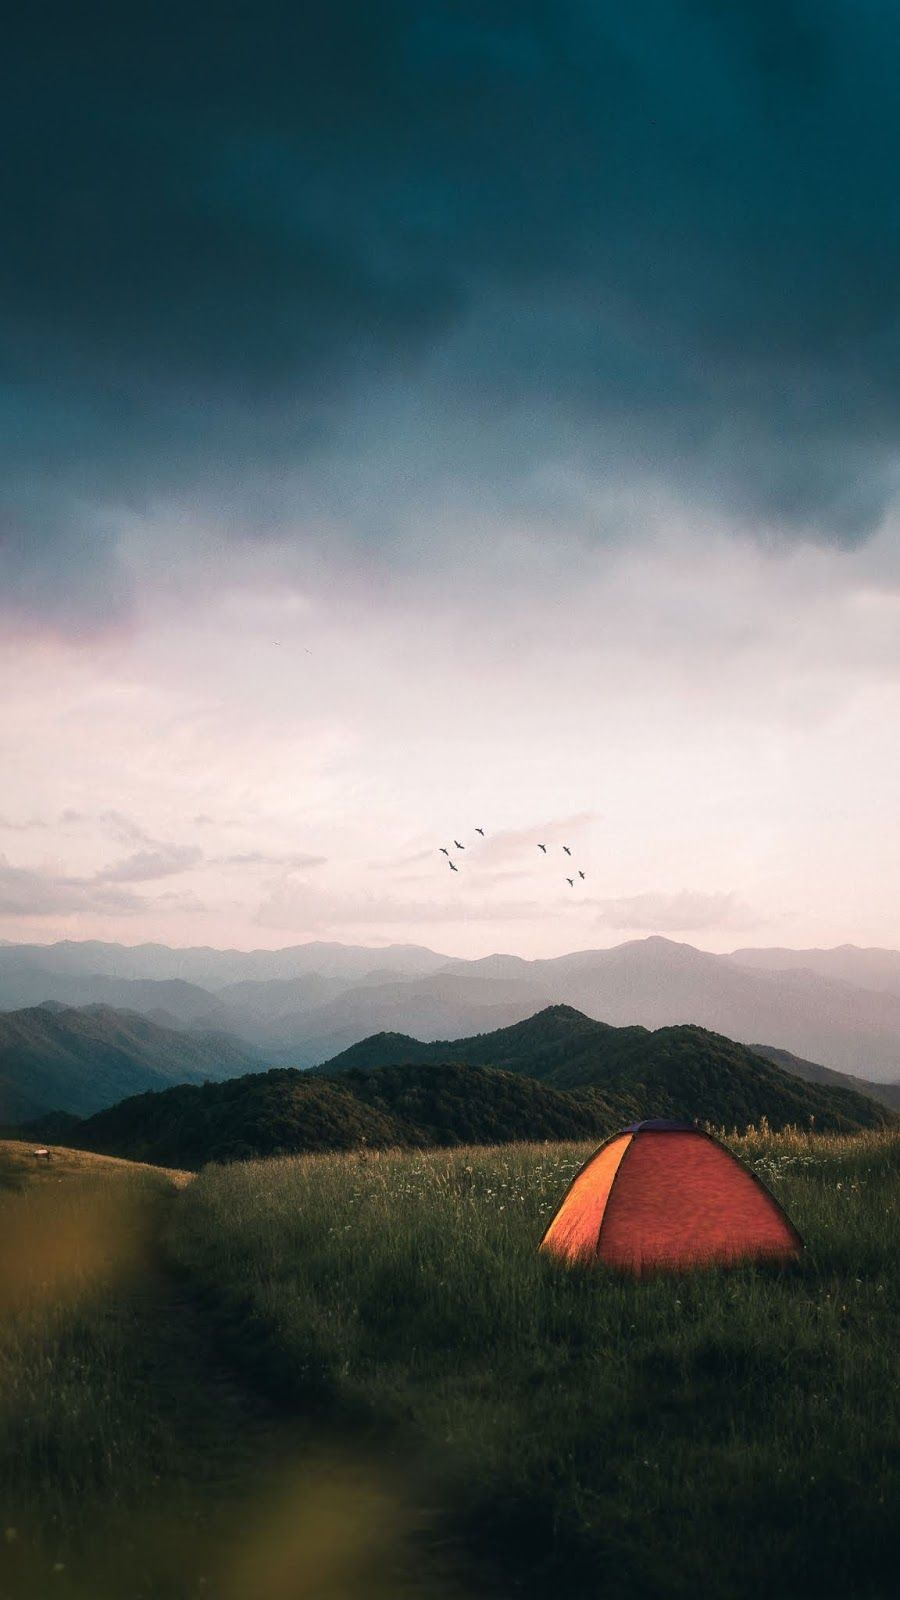 Camping Wallpaper Iphone Android Background Followme Camping Wallpaper Tent Camping Camping Aesthetic